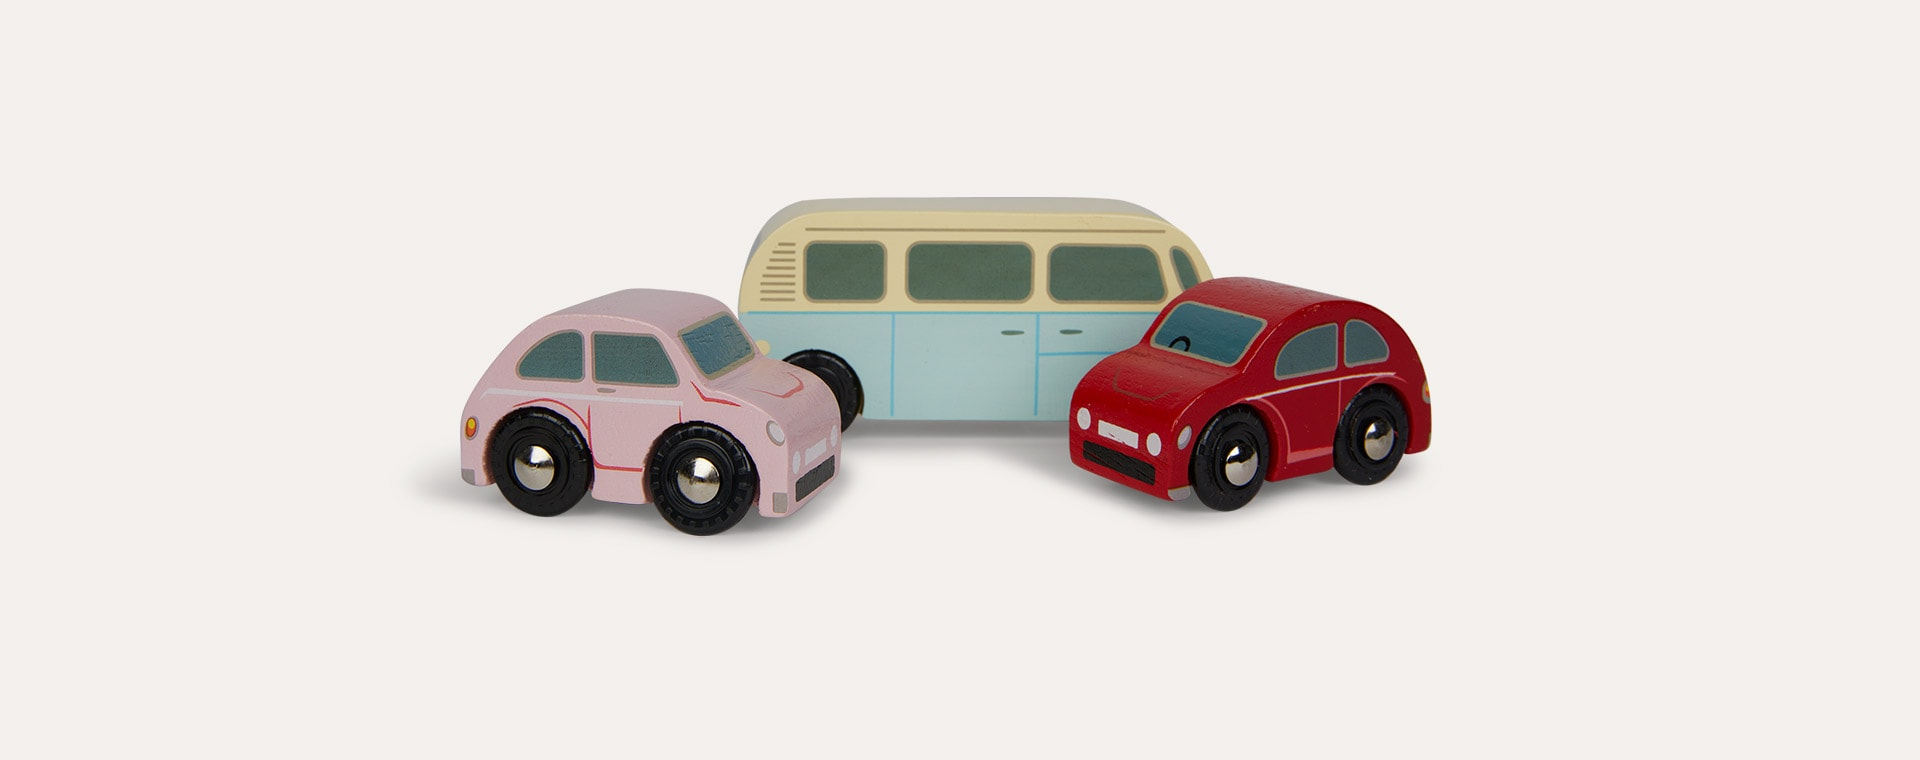 Multi Le Toy Van Retro Metro Car Set